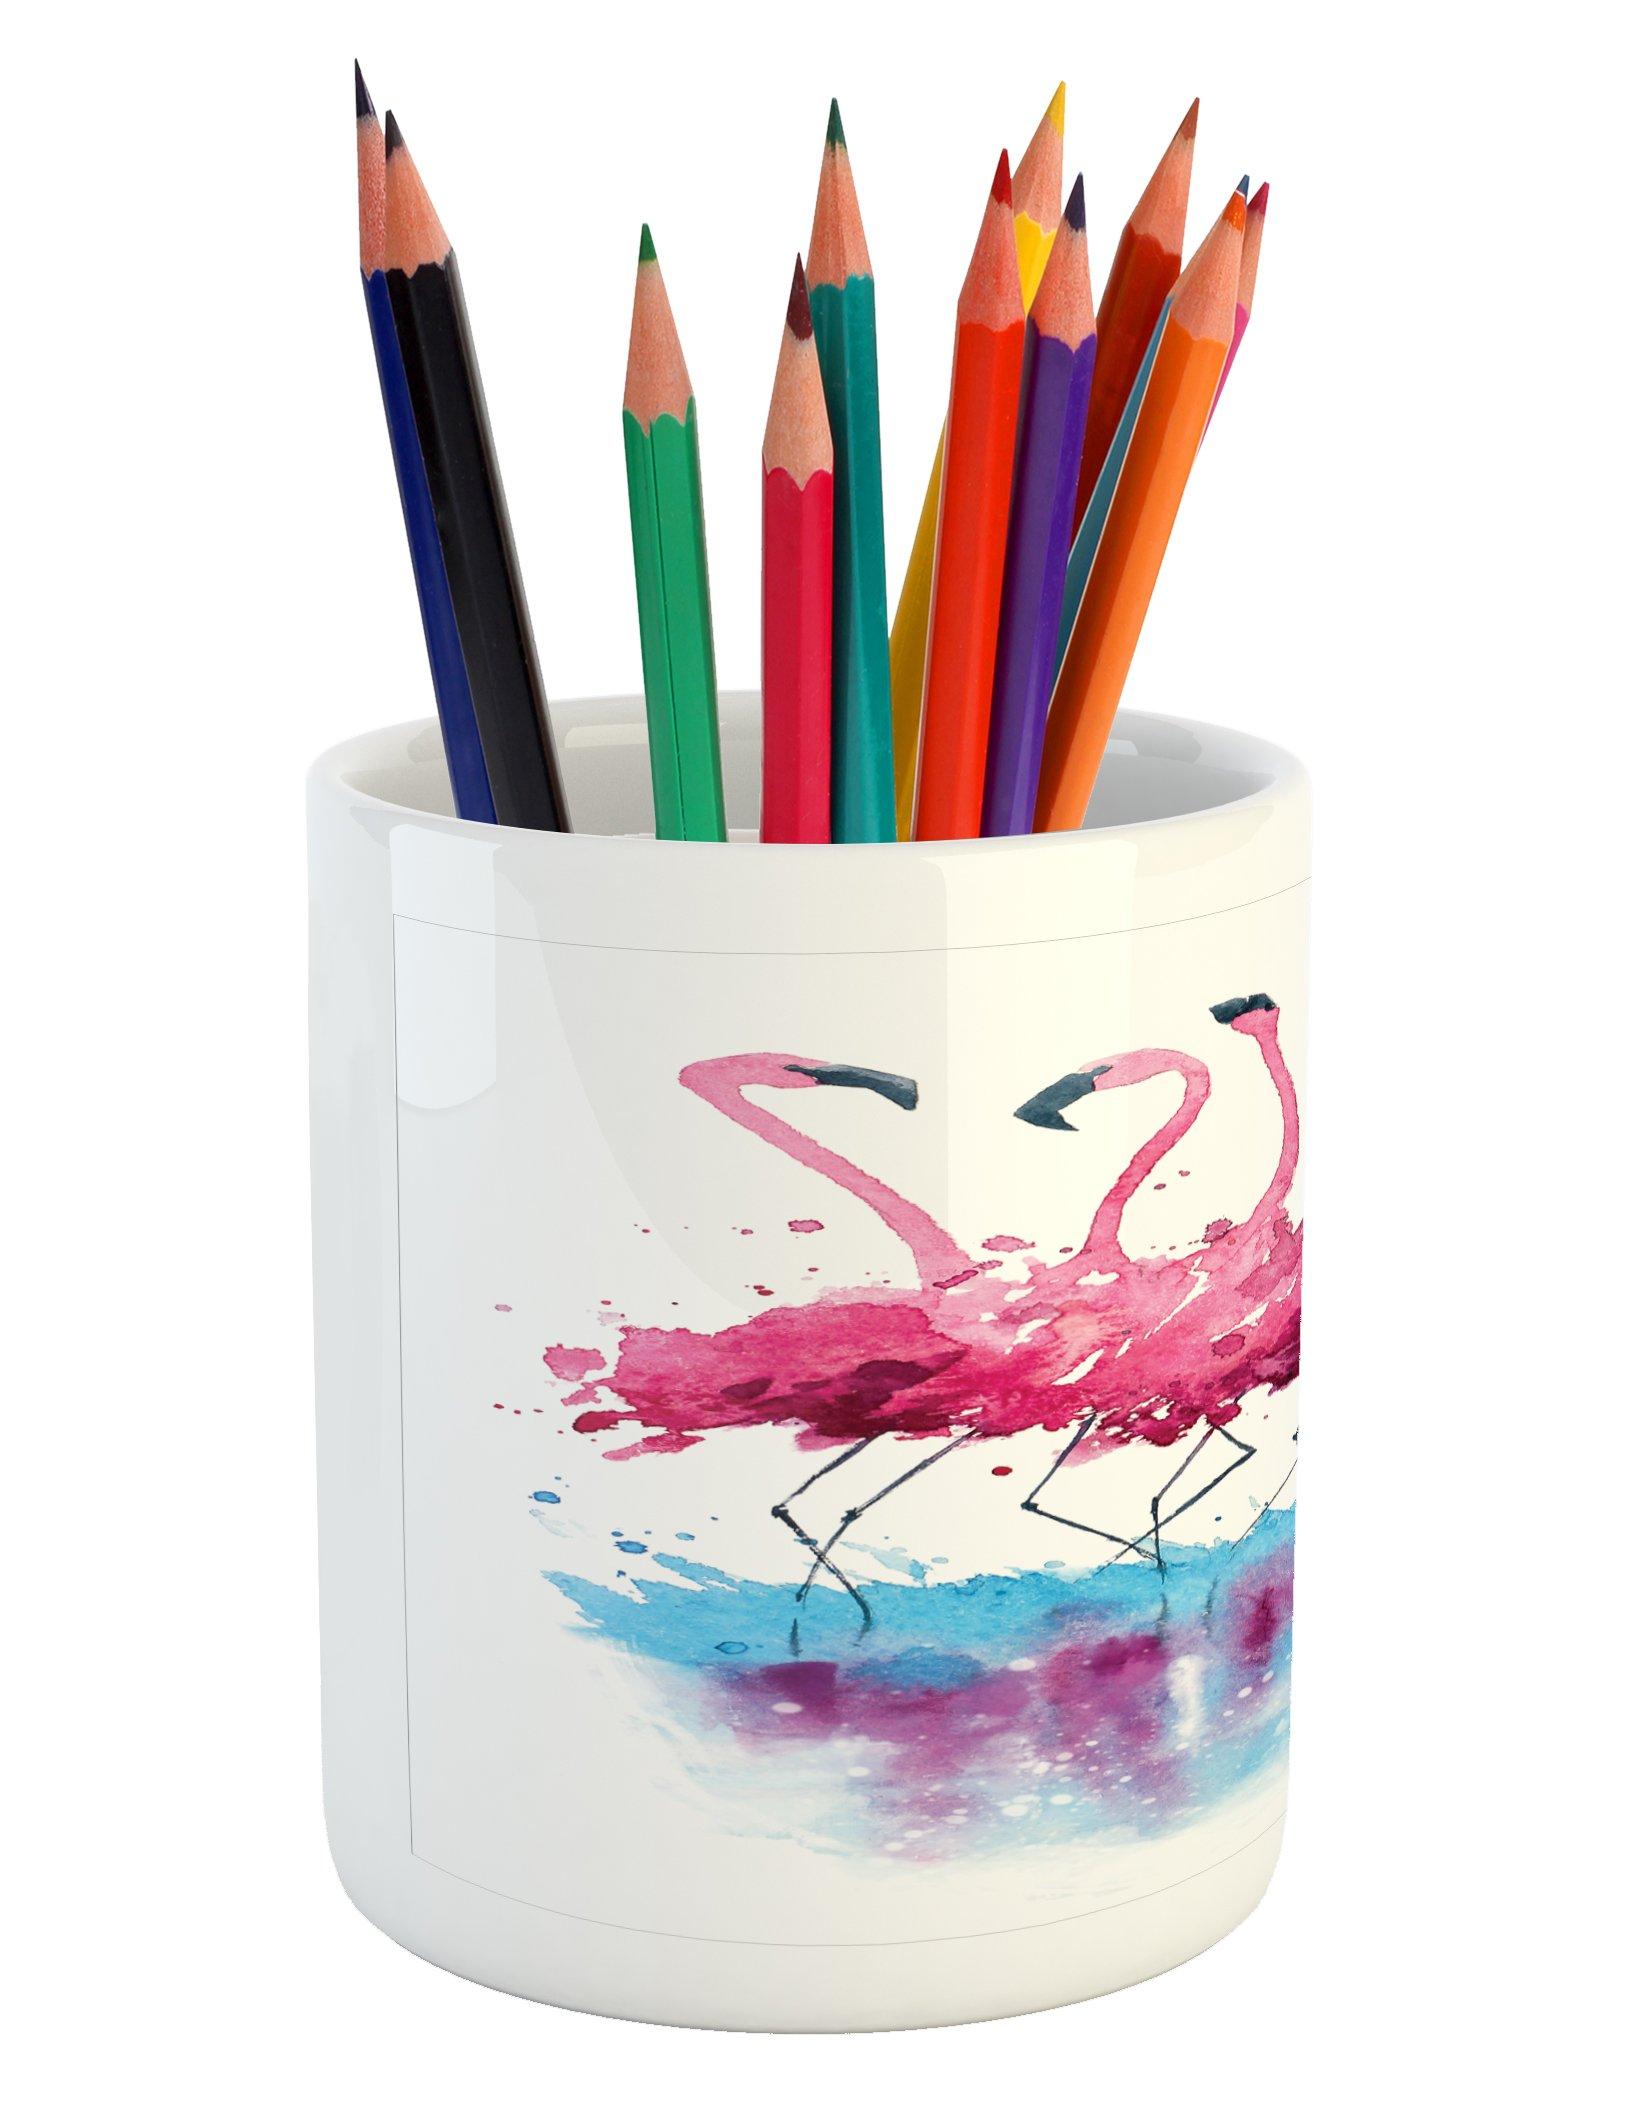 Ambesonne Animal Pencil Pen Holder, Flamingos Love Birds Feather Romance Brushstroke Splash Watercolor Effect, Printed Ceramic Pencil Pen Holder for Desk Office Accessory, Pink Blue Purple by Ambesonne (Image #4)